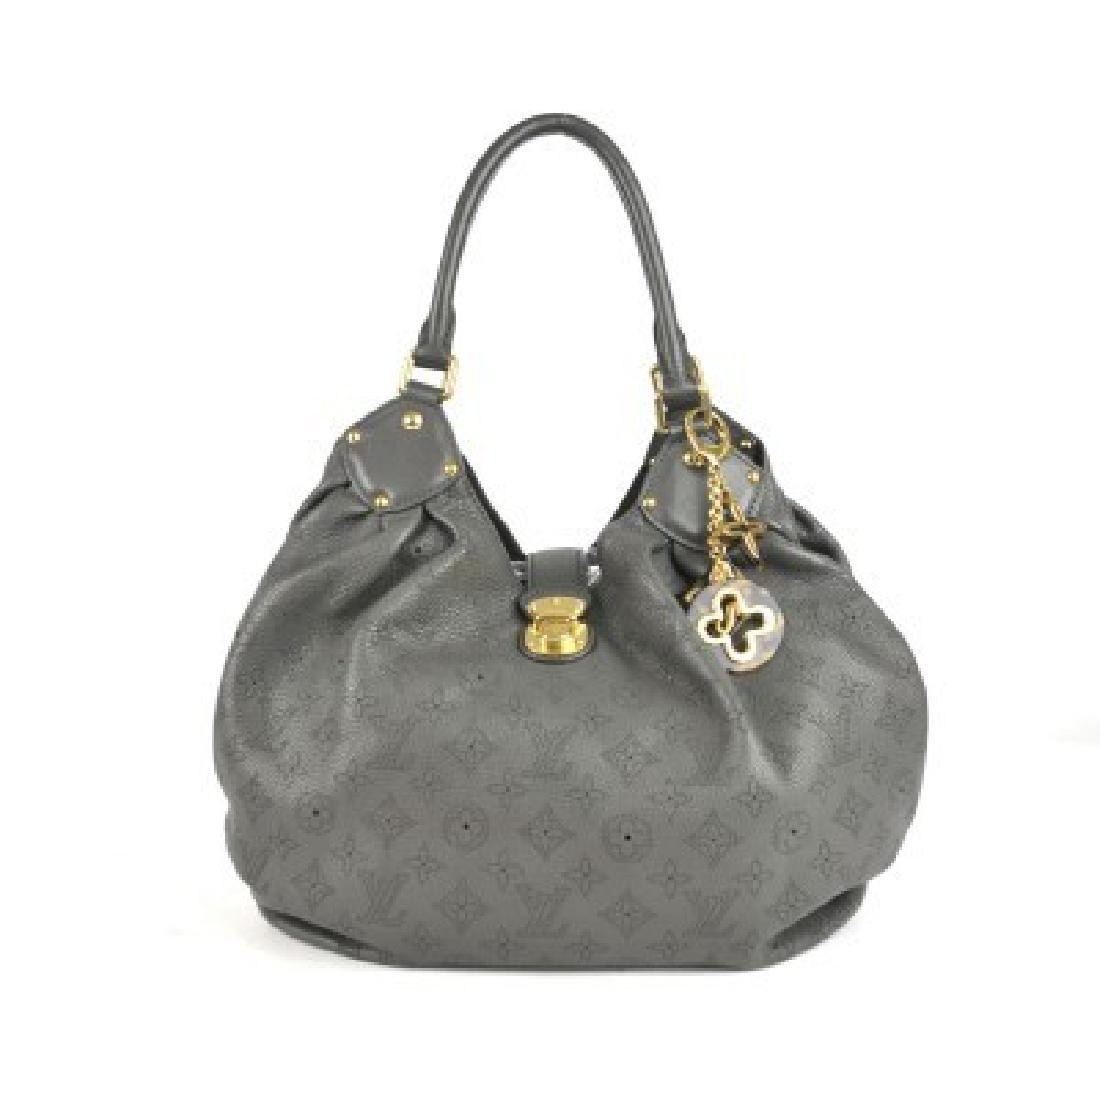 Louis Vuitton Handbag Mahina Hobo